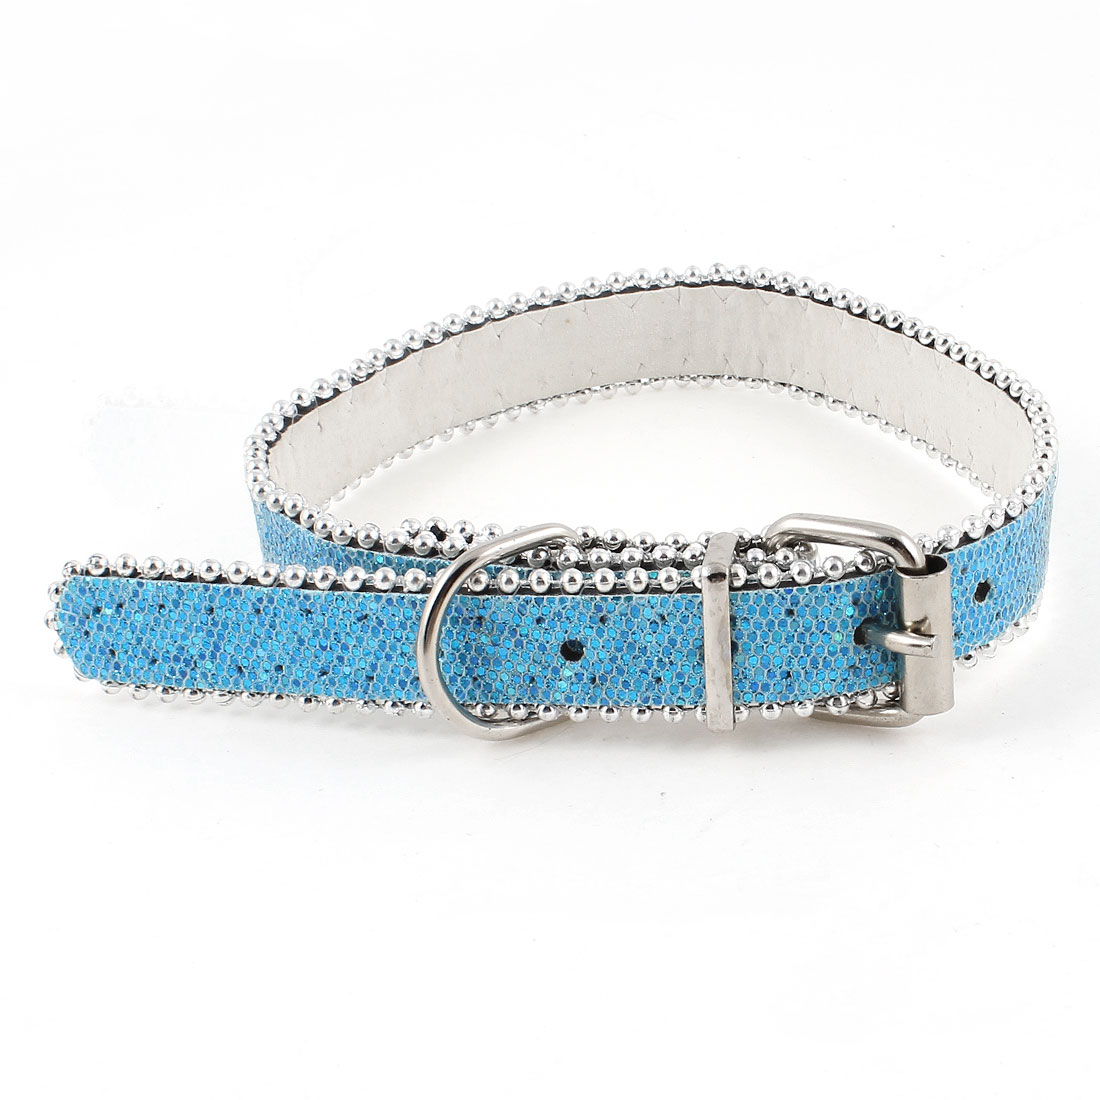 "0.8"" Wide Belt Glitter Powder Plastic Bead Accent Adjustable Pet Puppy Collar Blue"